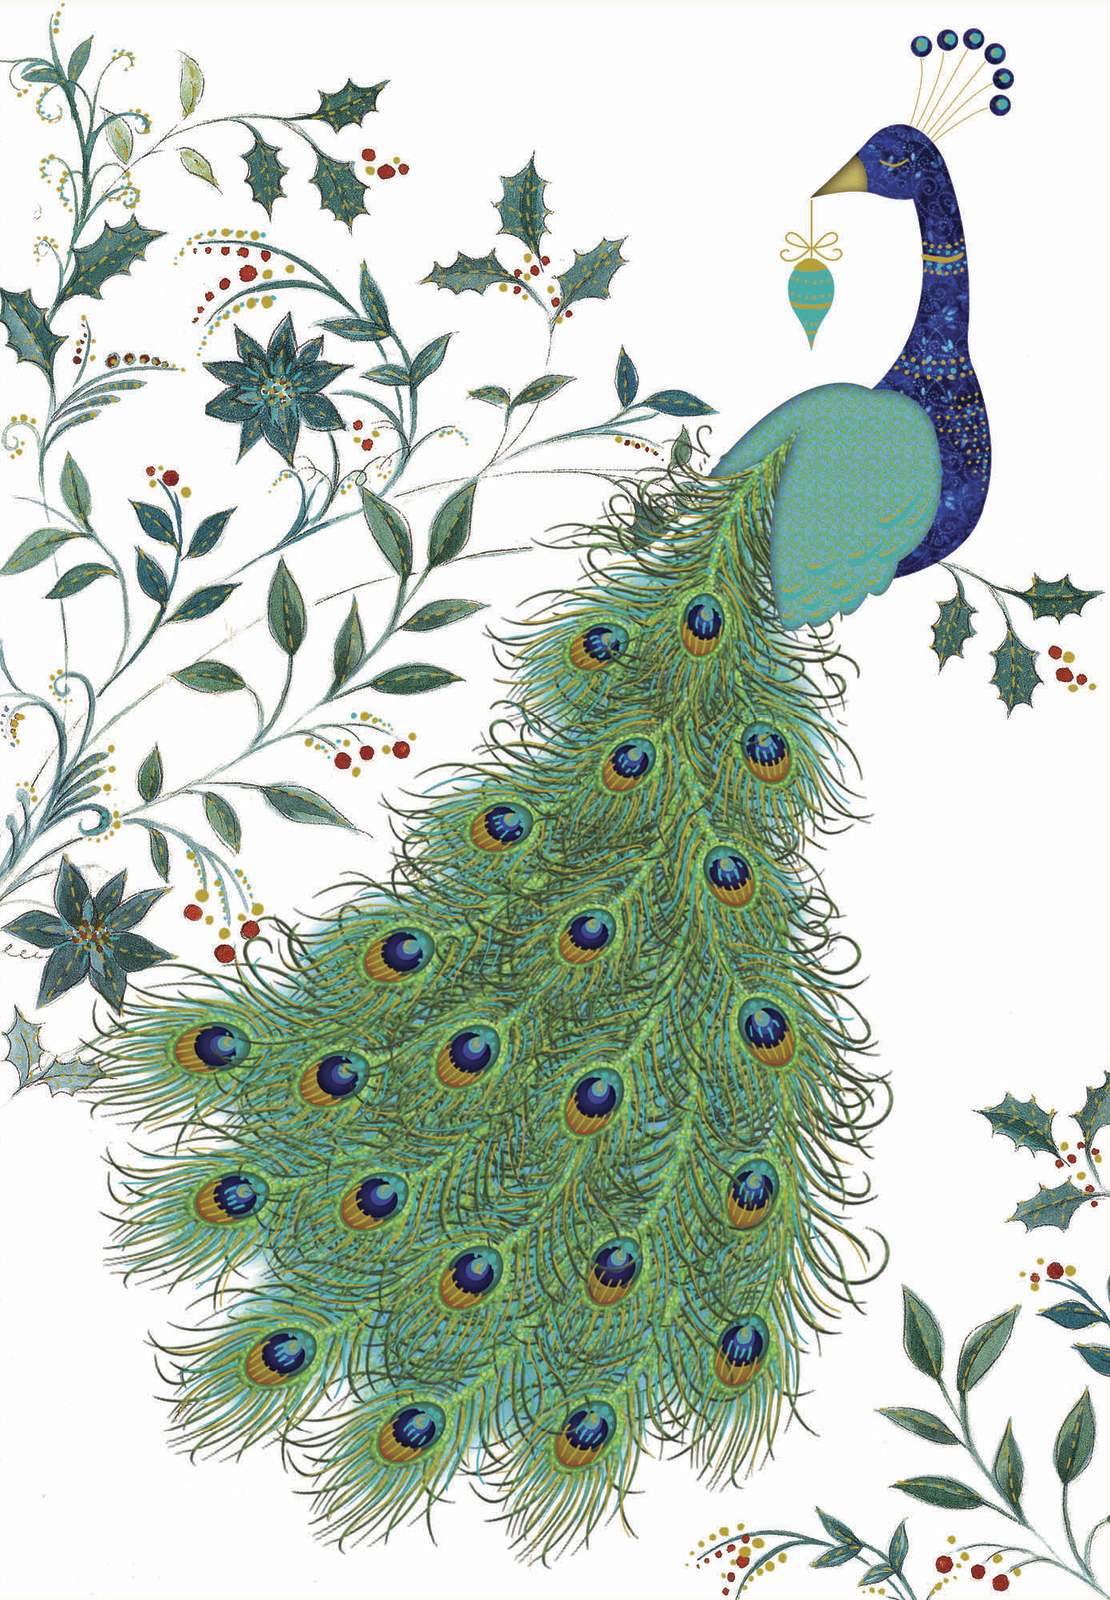 Premium Boxed Christmas Cards - Peacock Plume (8 Pack) image